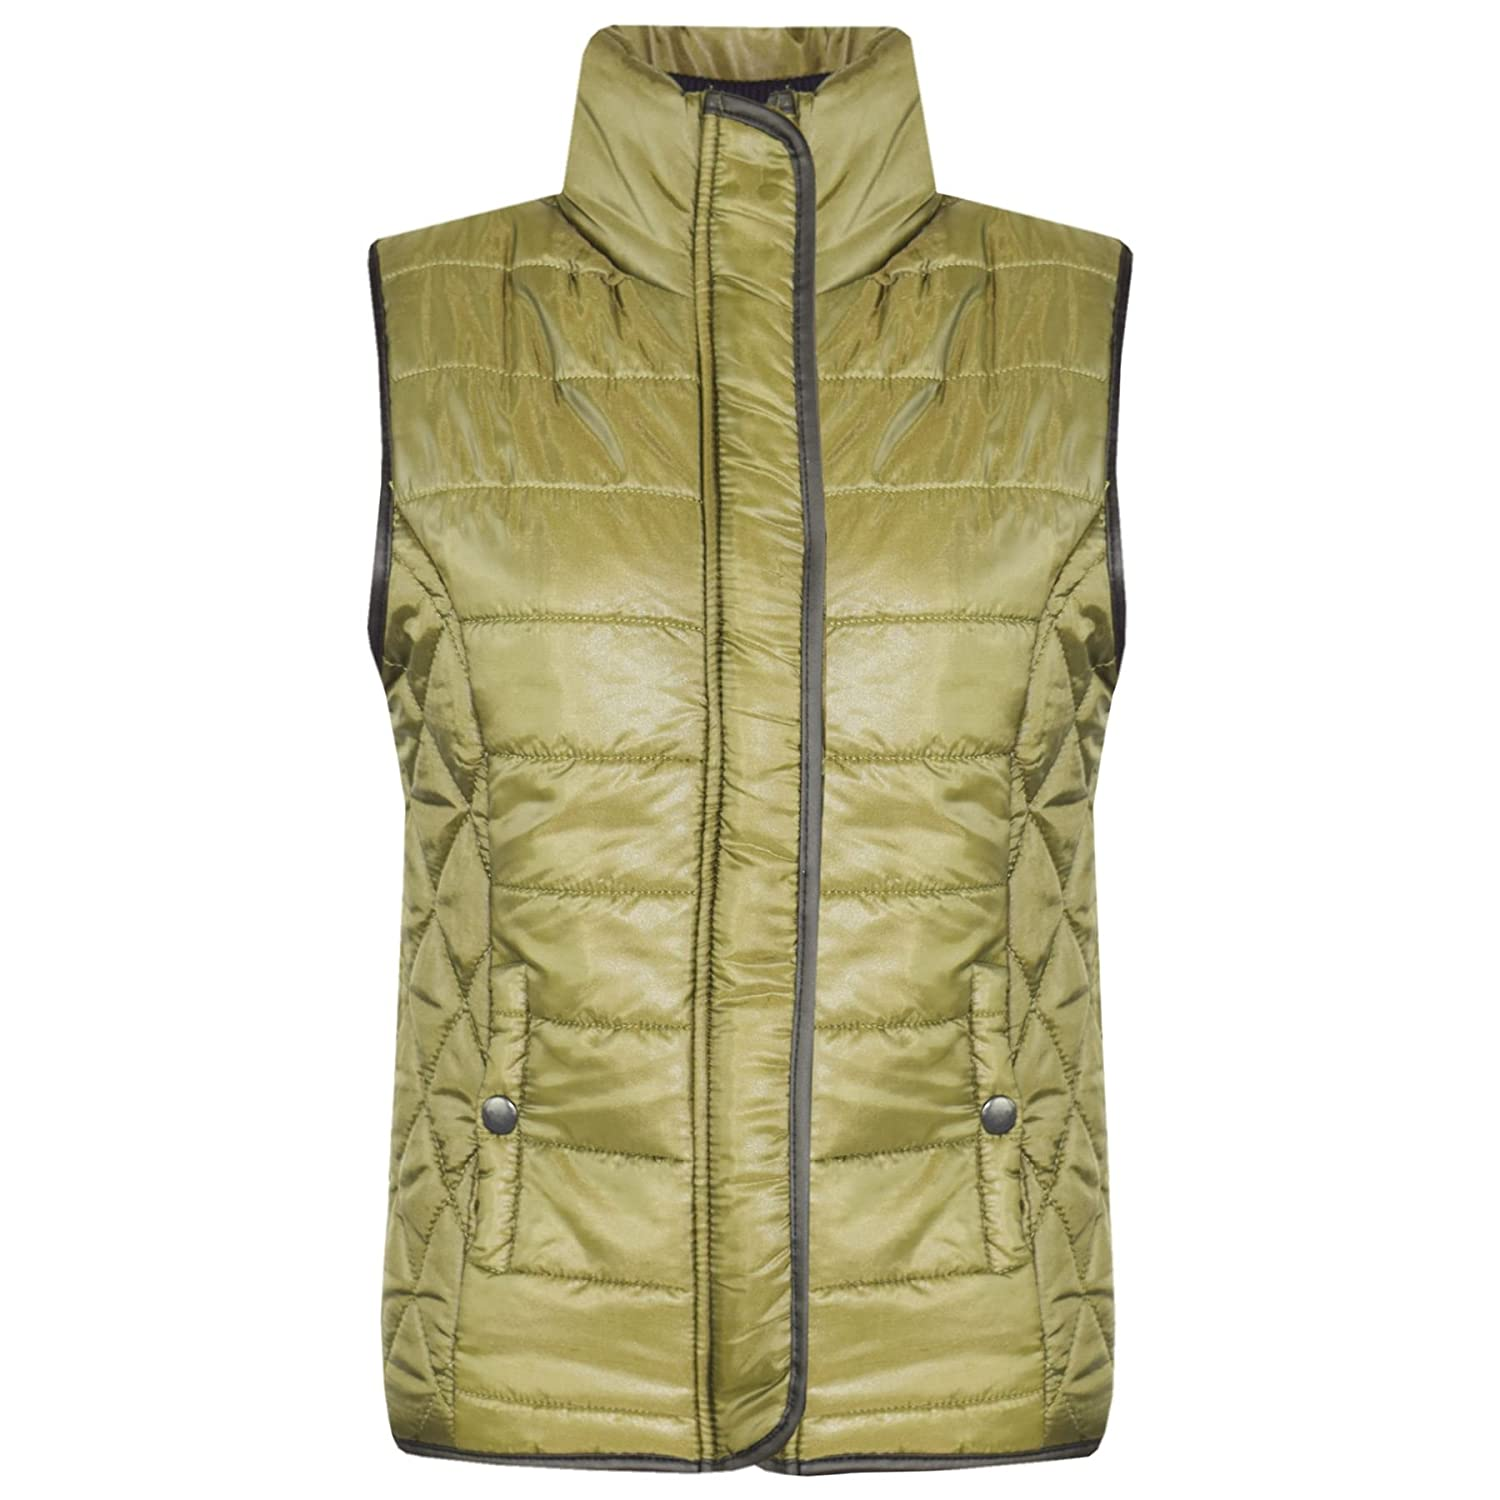 Kids Girls Boys Olive Wet Look Sleeveless Lined Padded Gilet Body Warmer Jackets